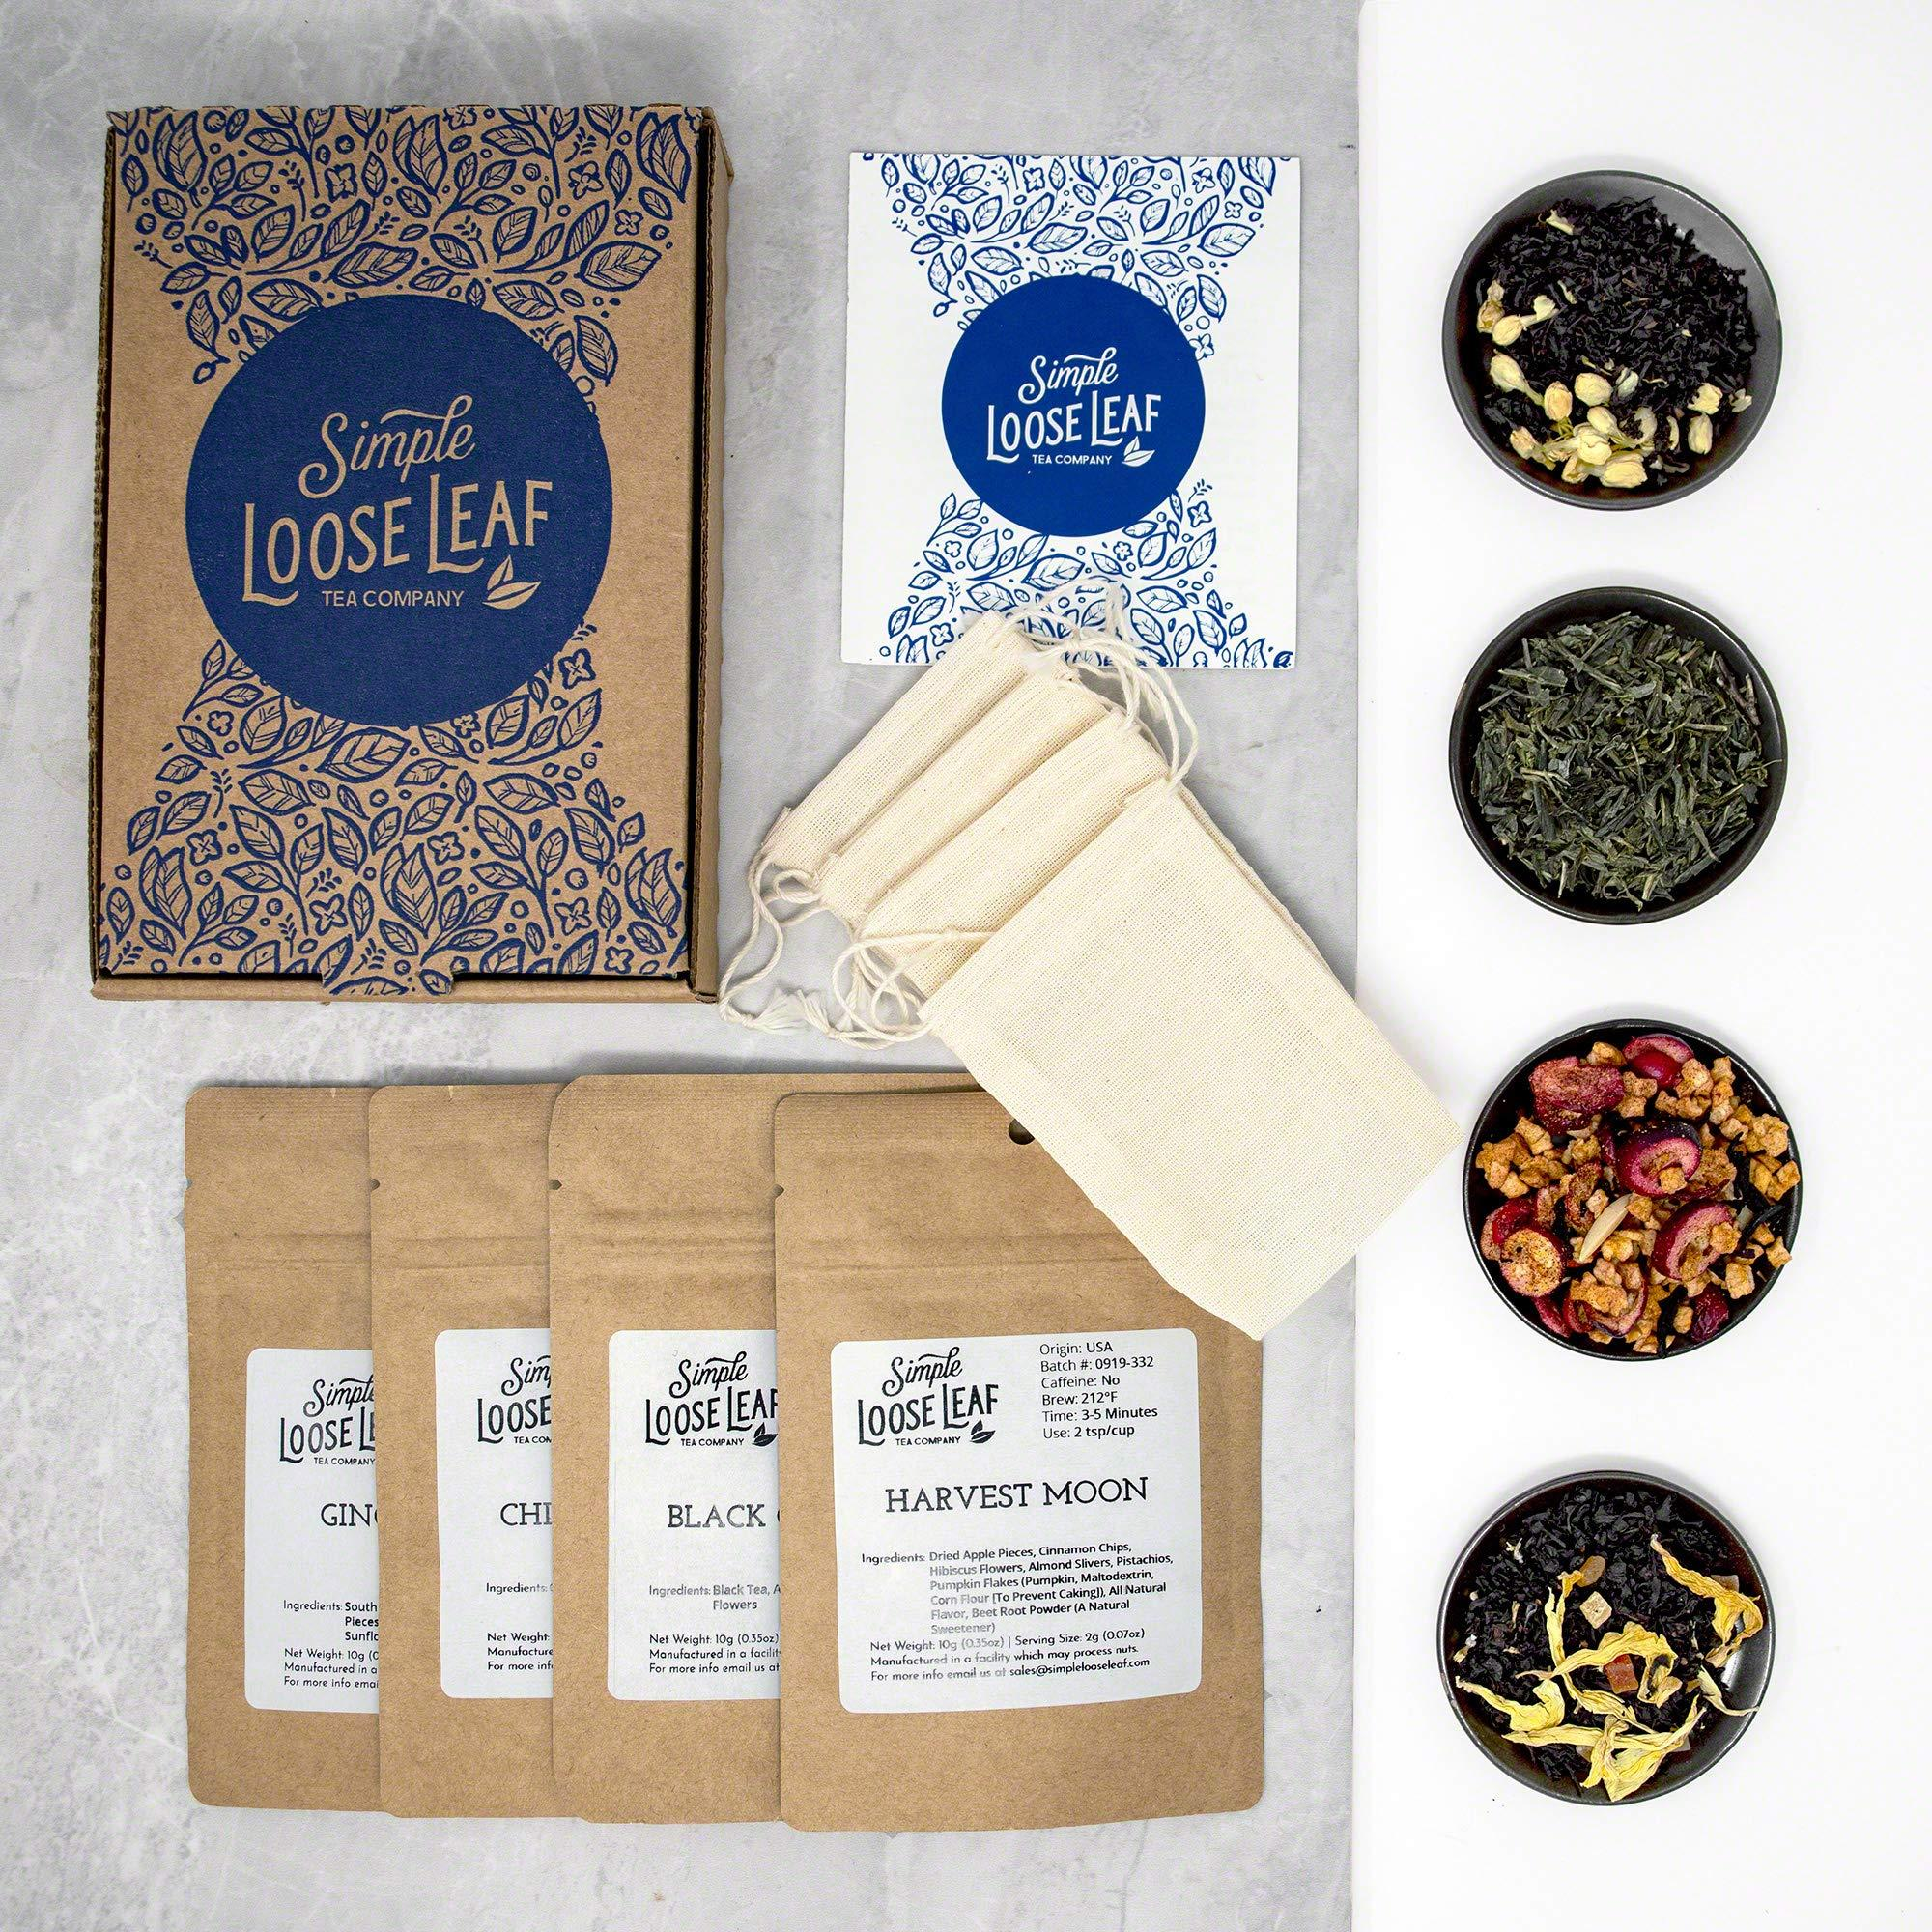 A curated selection of loose leaf tea